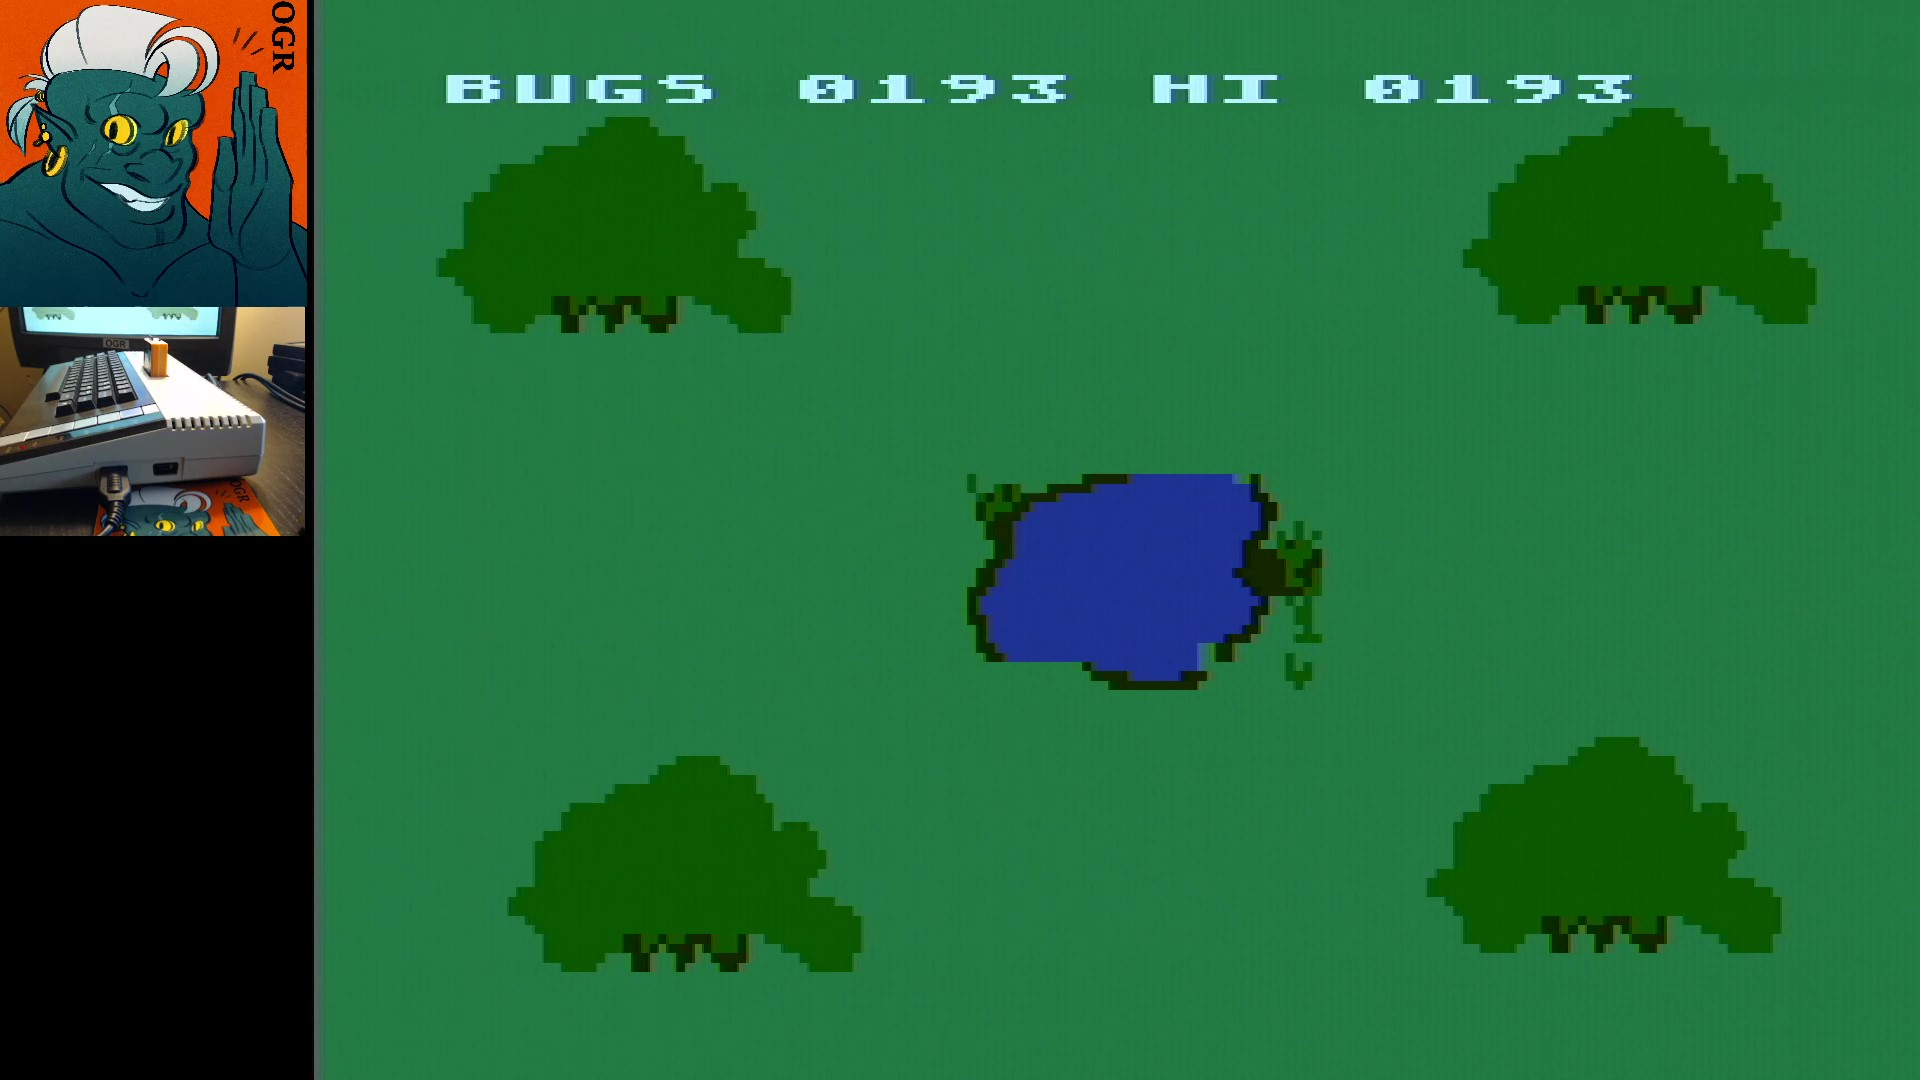 AwesomeOgre: Alien Bugs (Atari 400/800/XL/XE) 193 points on 2020-01-16 14:41:08